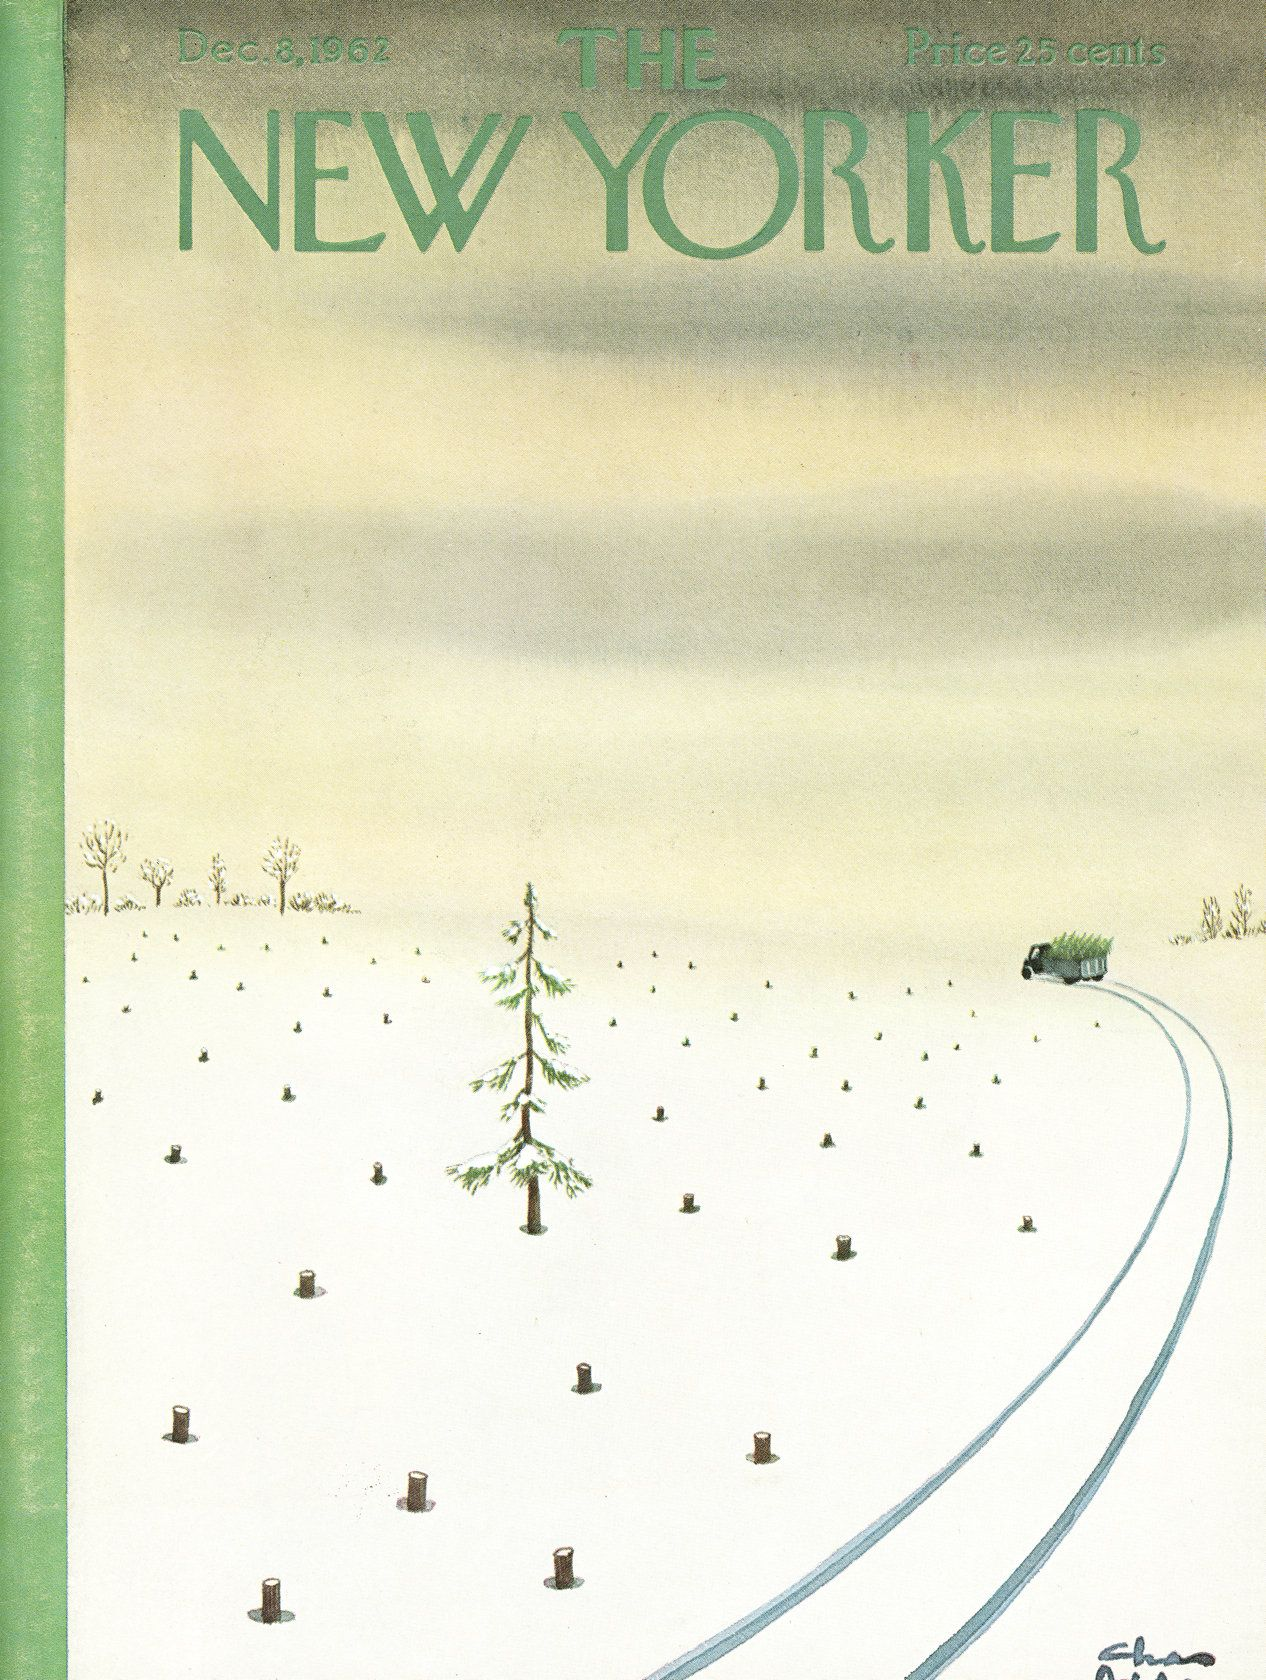 The New Yorker - Saturday, December 8, 1962 - Issue # 1973 - Vol. 38 - N° 42 - Cover by : Charles Addams